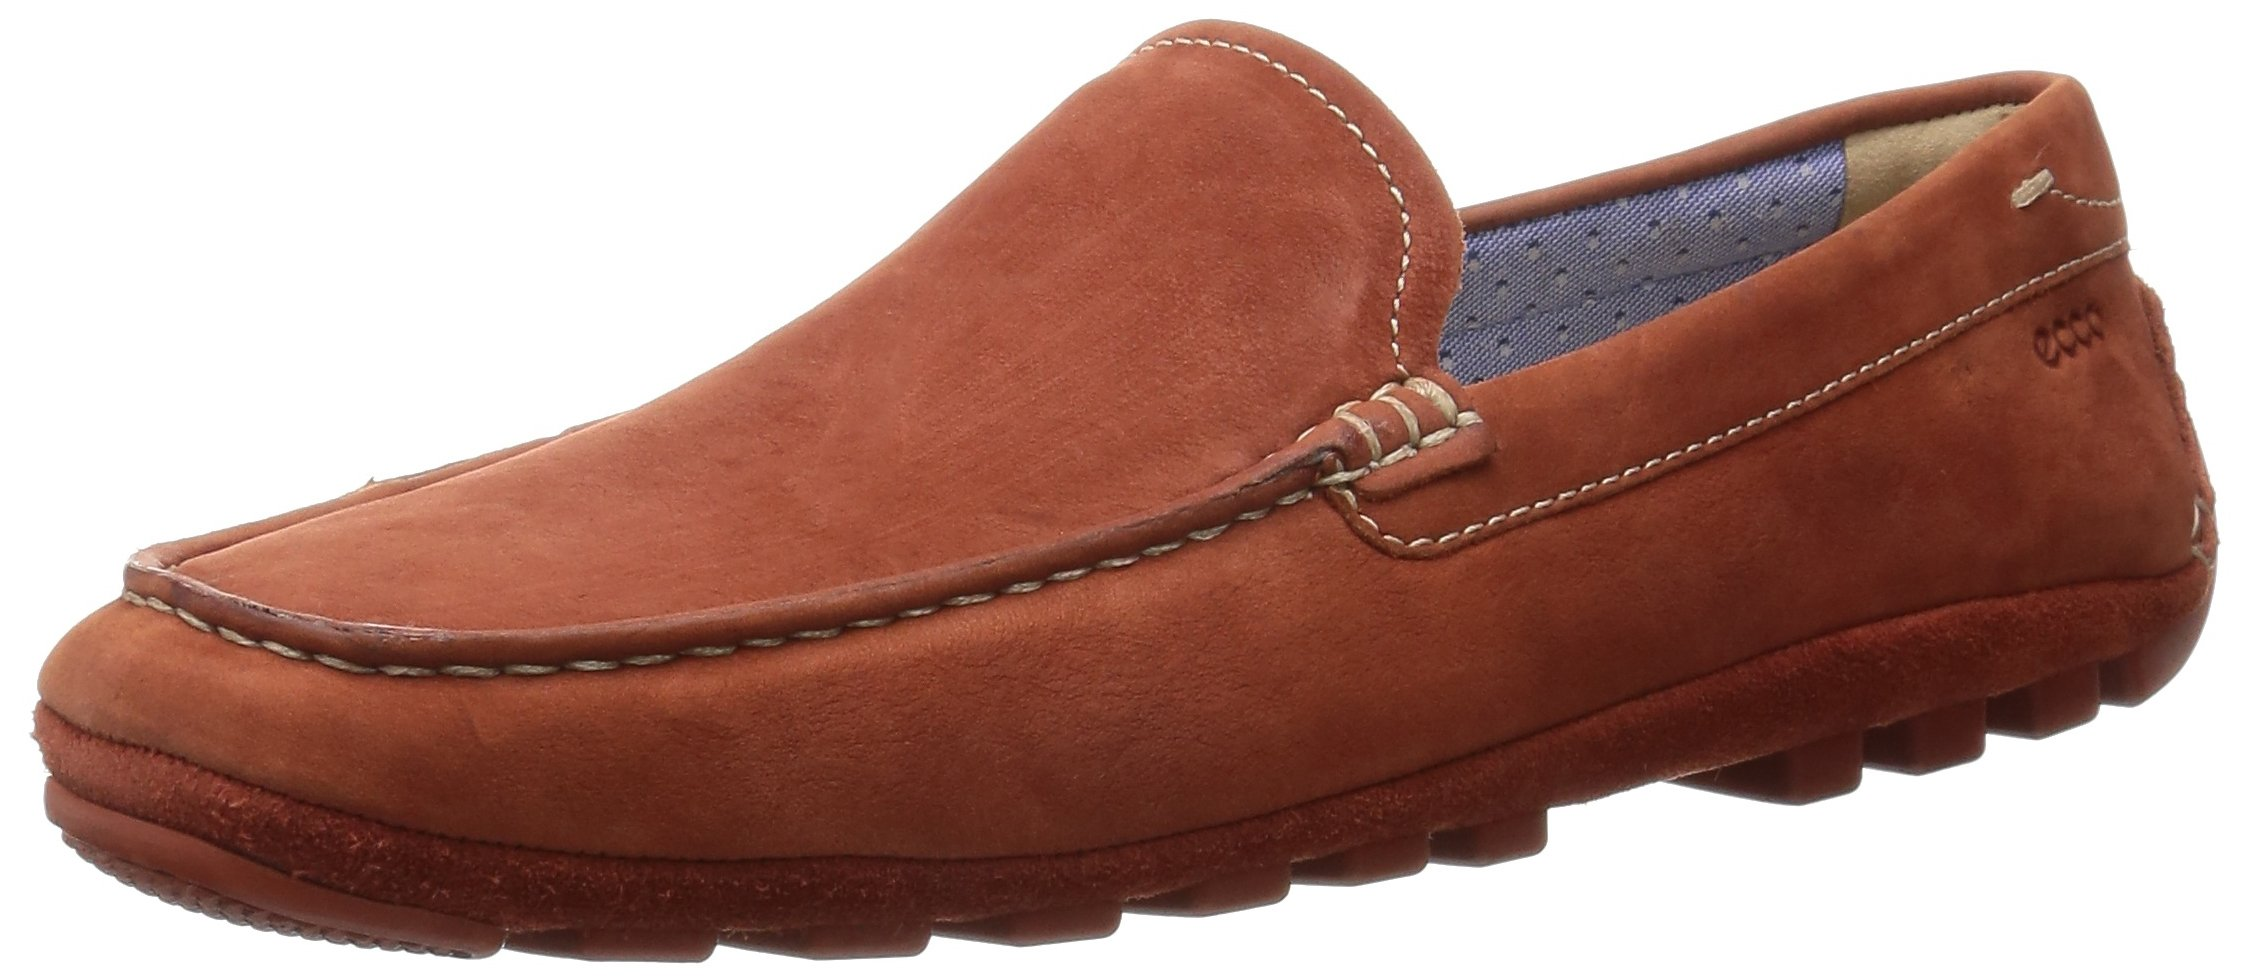 ECCO Men's Summer Moc Slip-On Loafer, Picante, 45 EU/11-11.5 M US